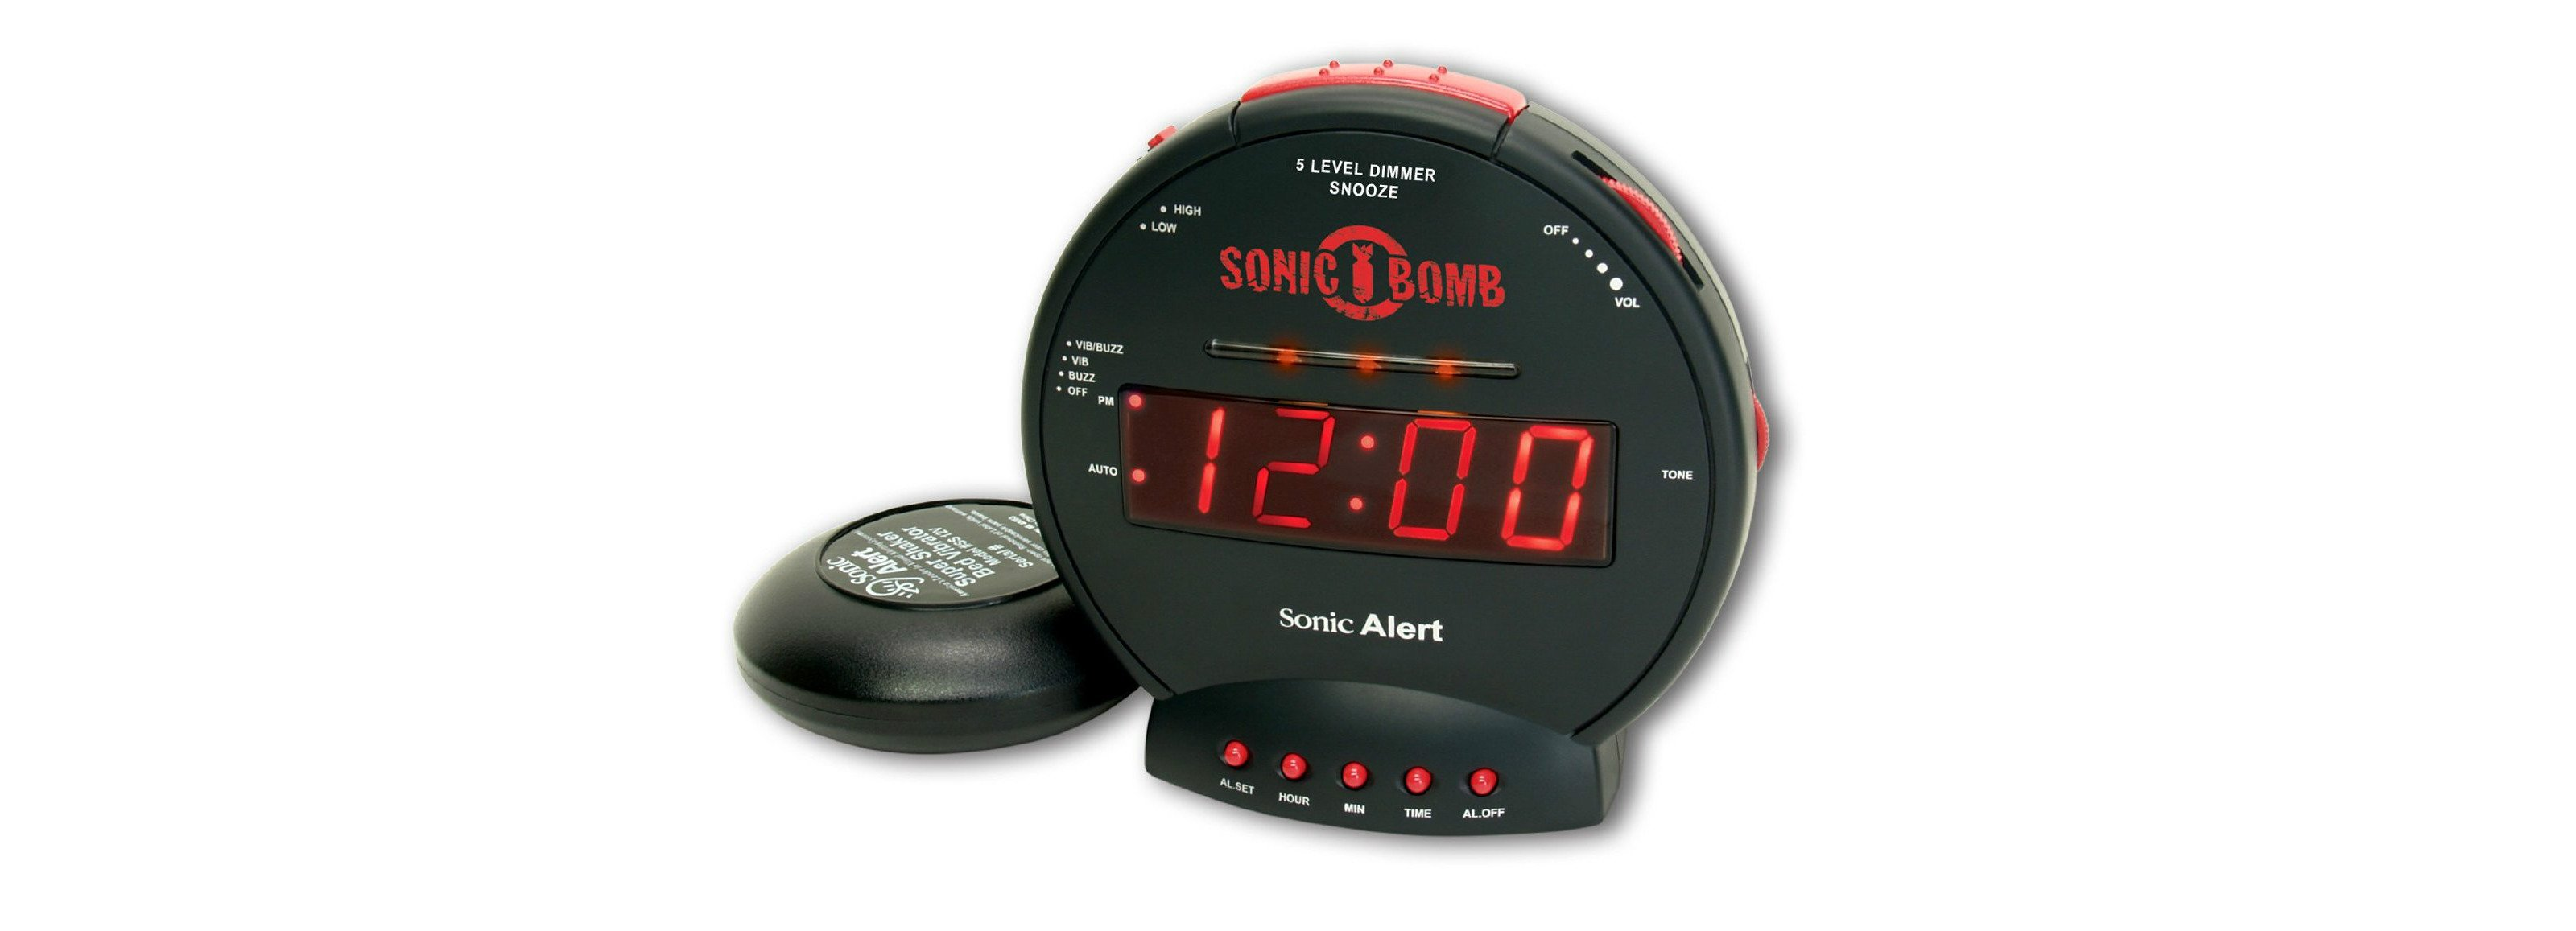 Best Alarm Clock The Best Alarm Clocks Guaranteed Wakeup Calls - Best alarm clocks